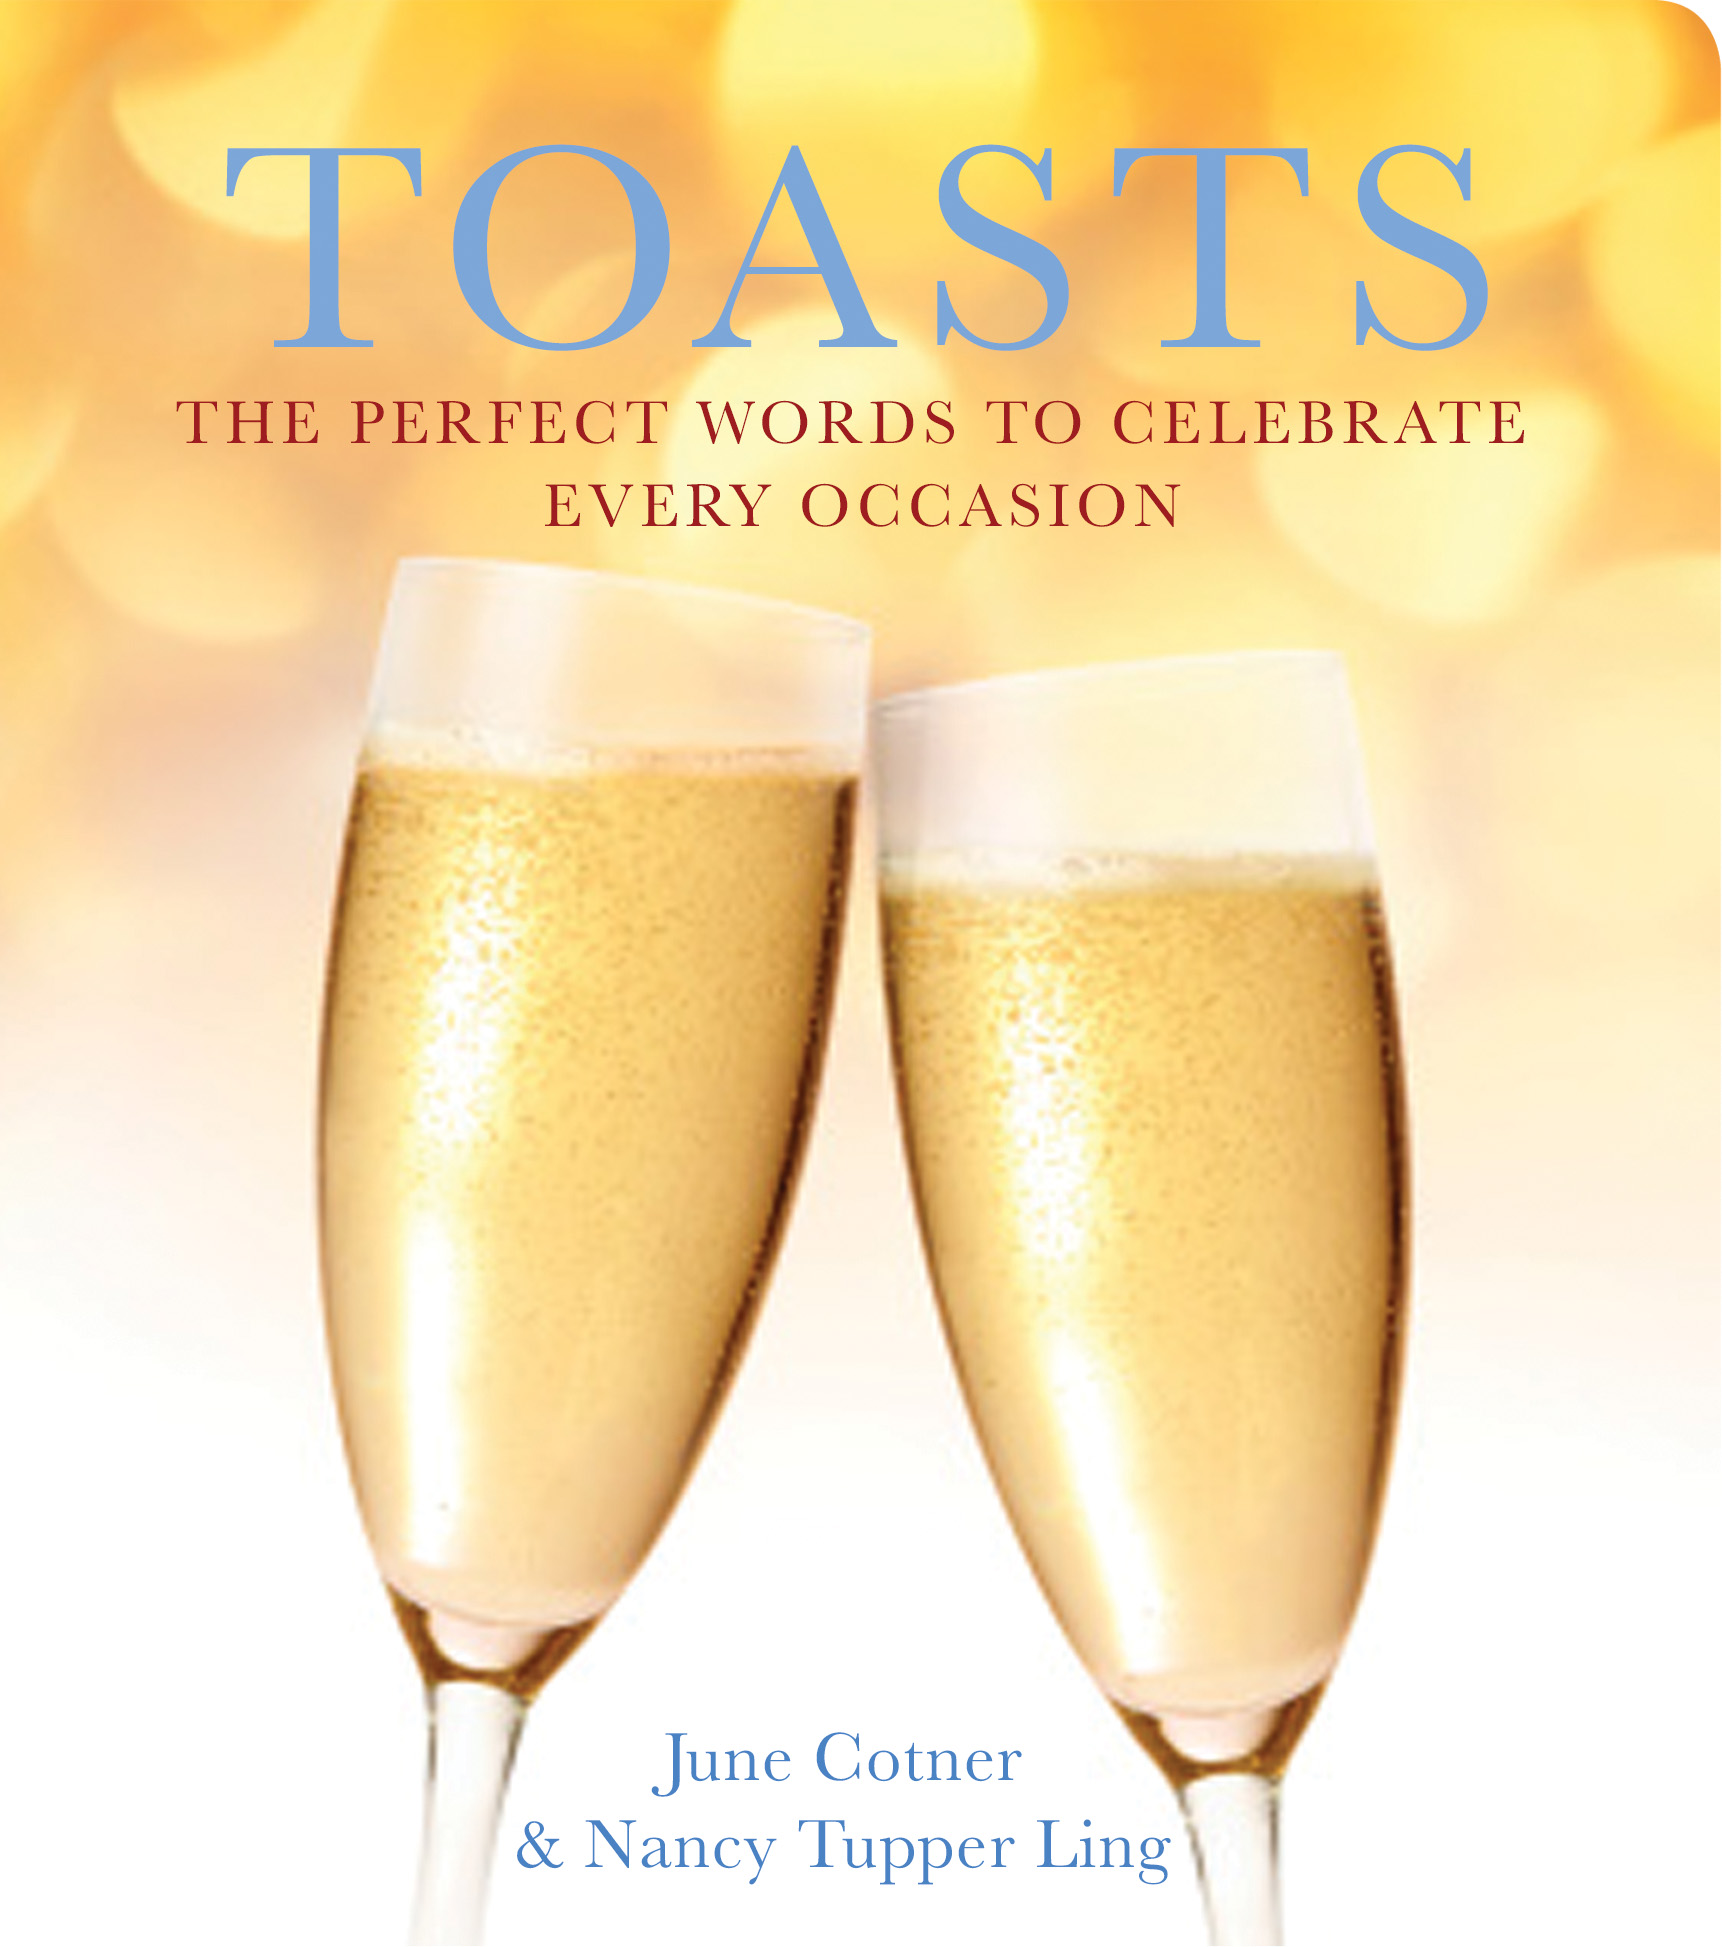 happy birthday toast images ; Unique-Birthday-Toast-On-Your-Special-Occasion